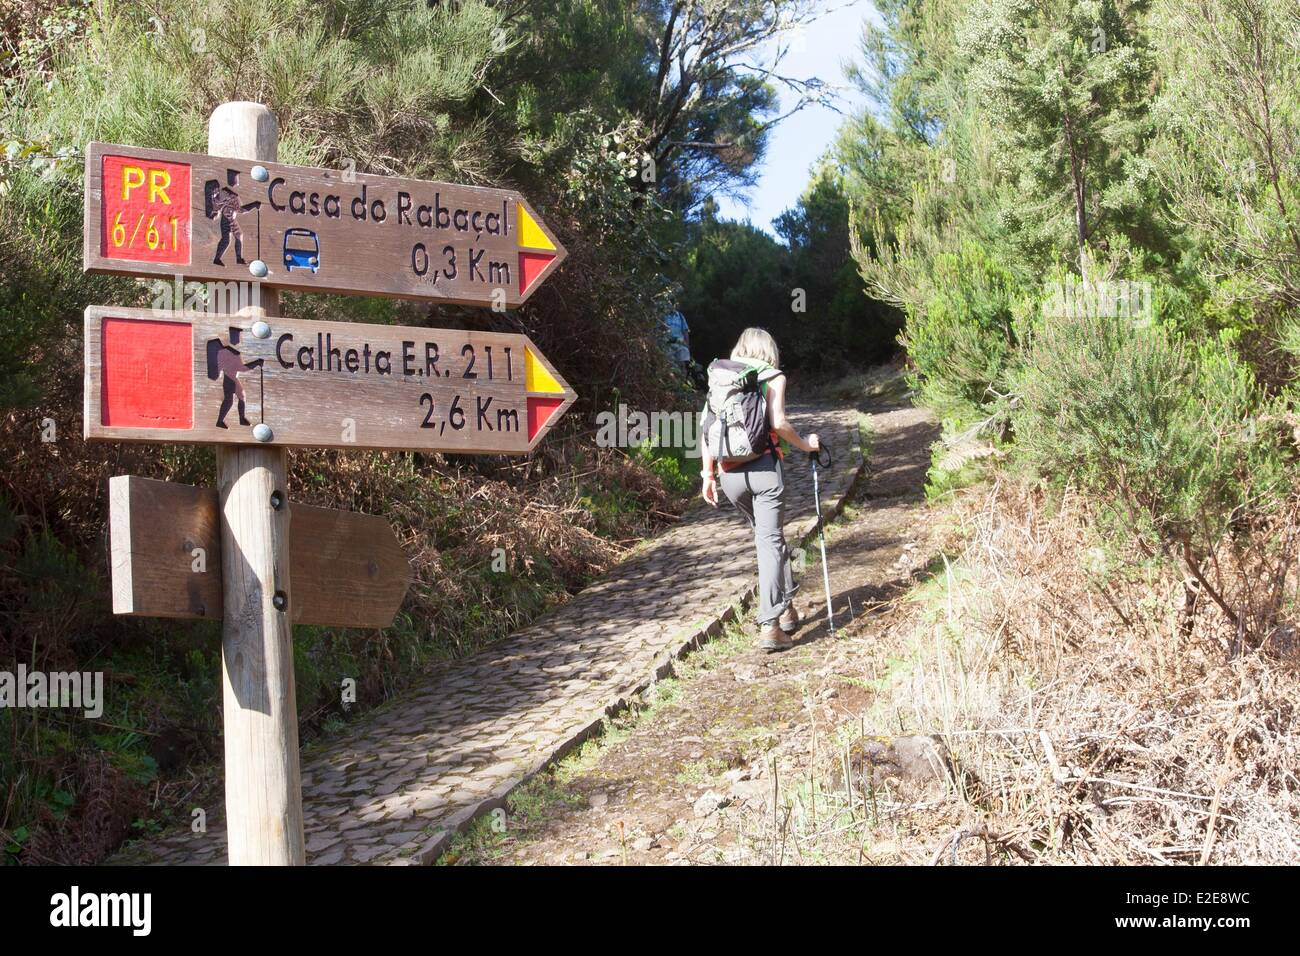 Portugal, Madeira island, hicker on the way to the levada of the 25 springs - Stock Image